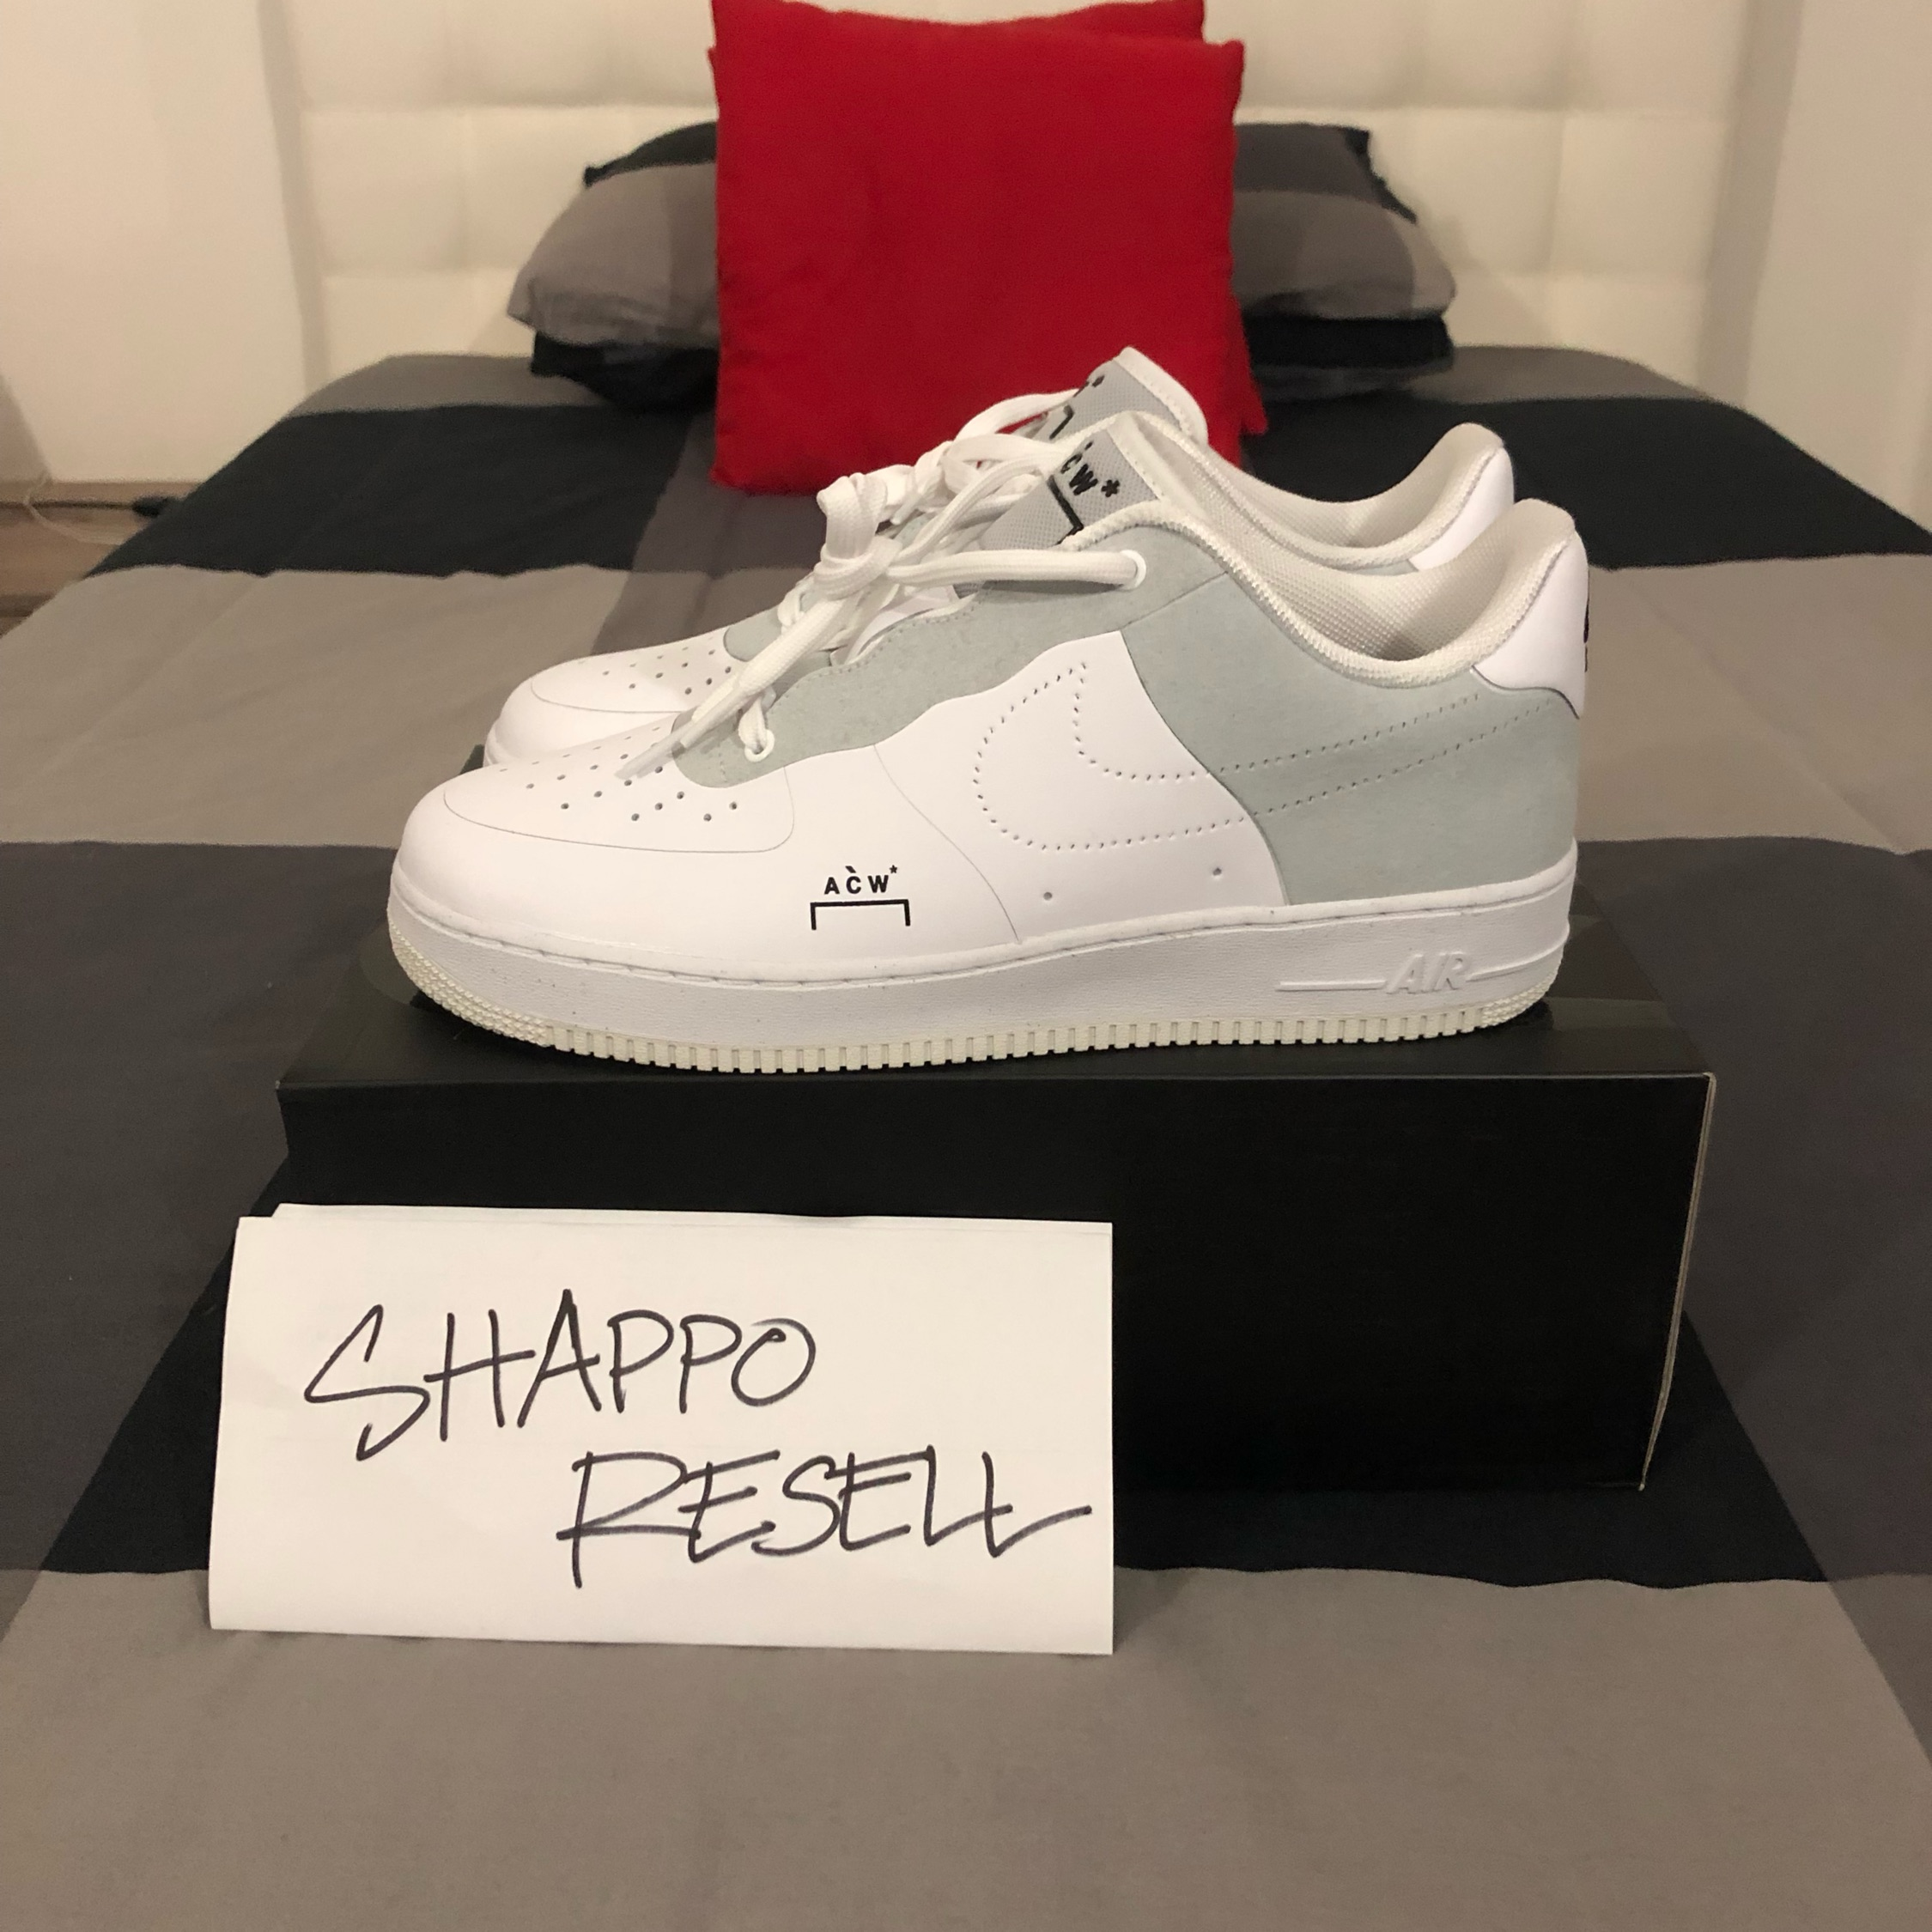 timeless design 71adc 1ff55 Nike X Acw Air Force 1 Low Us 10.5